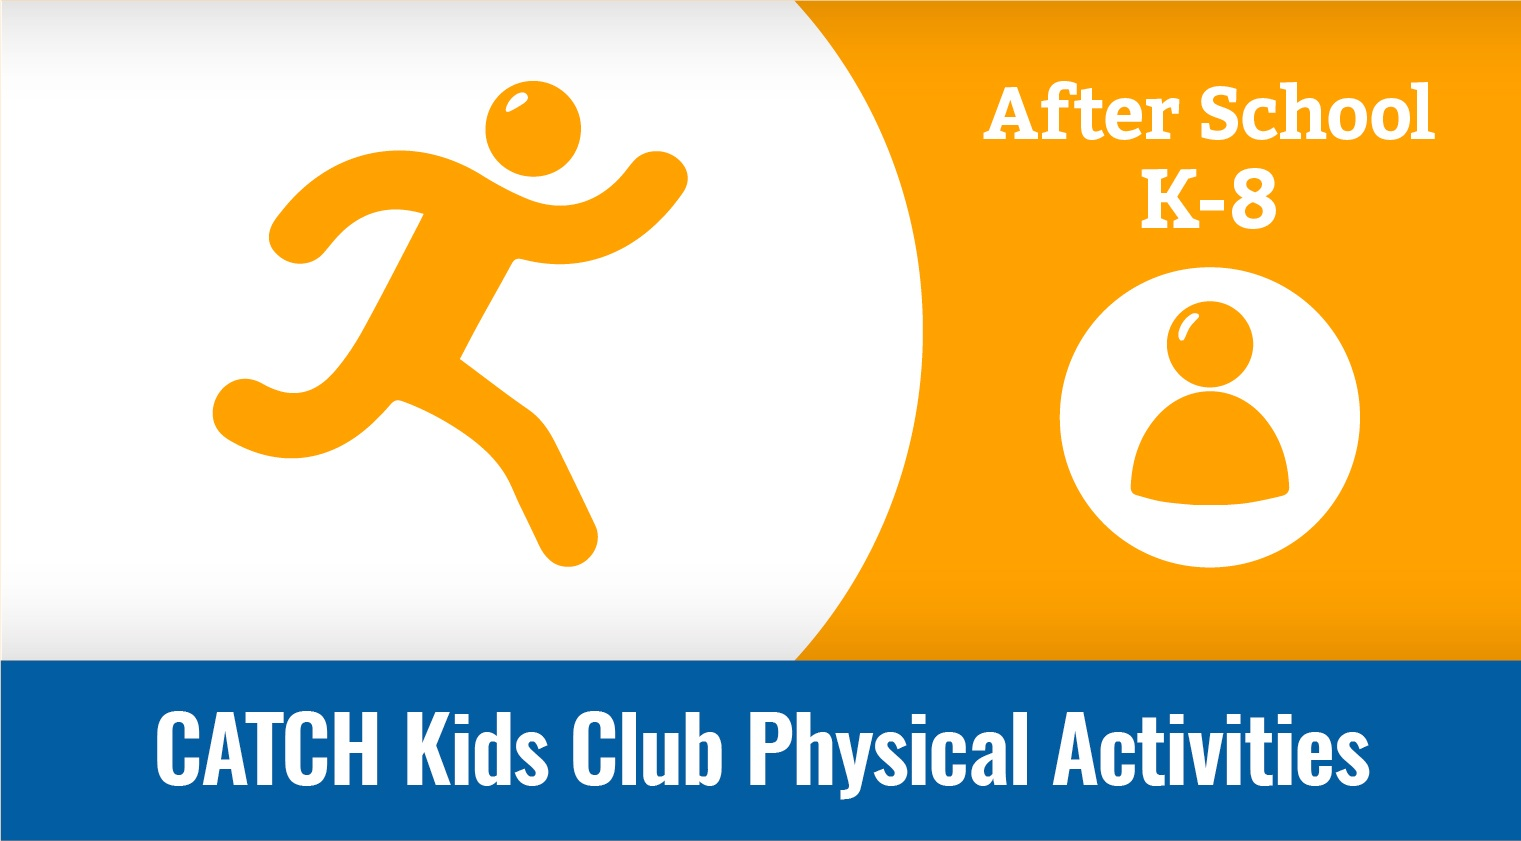 CATCH Kids Club - Guide for Inclusion of Youth with Disability